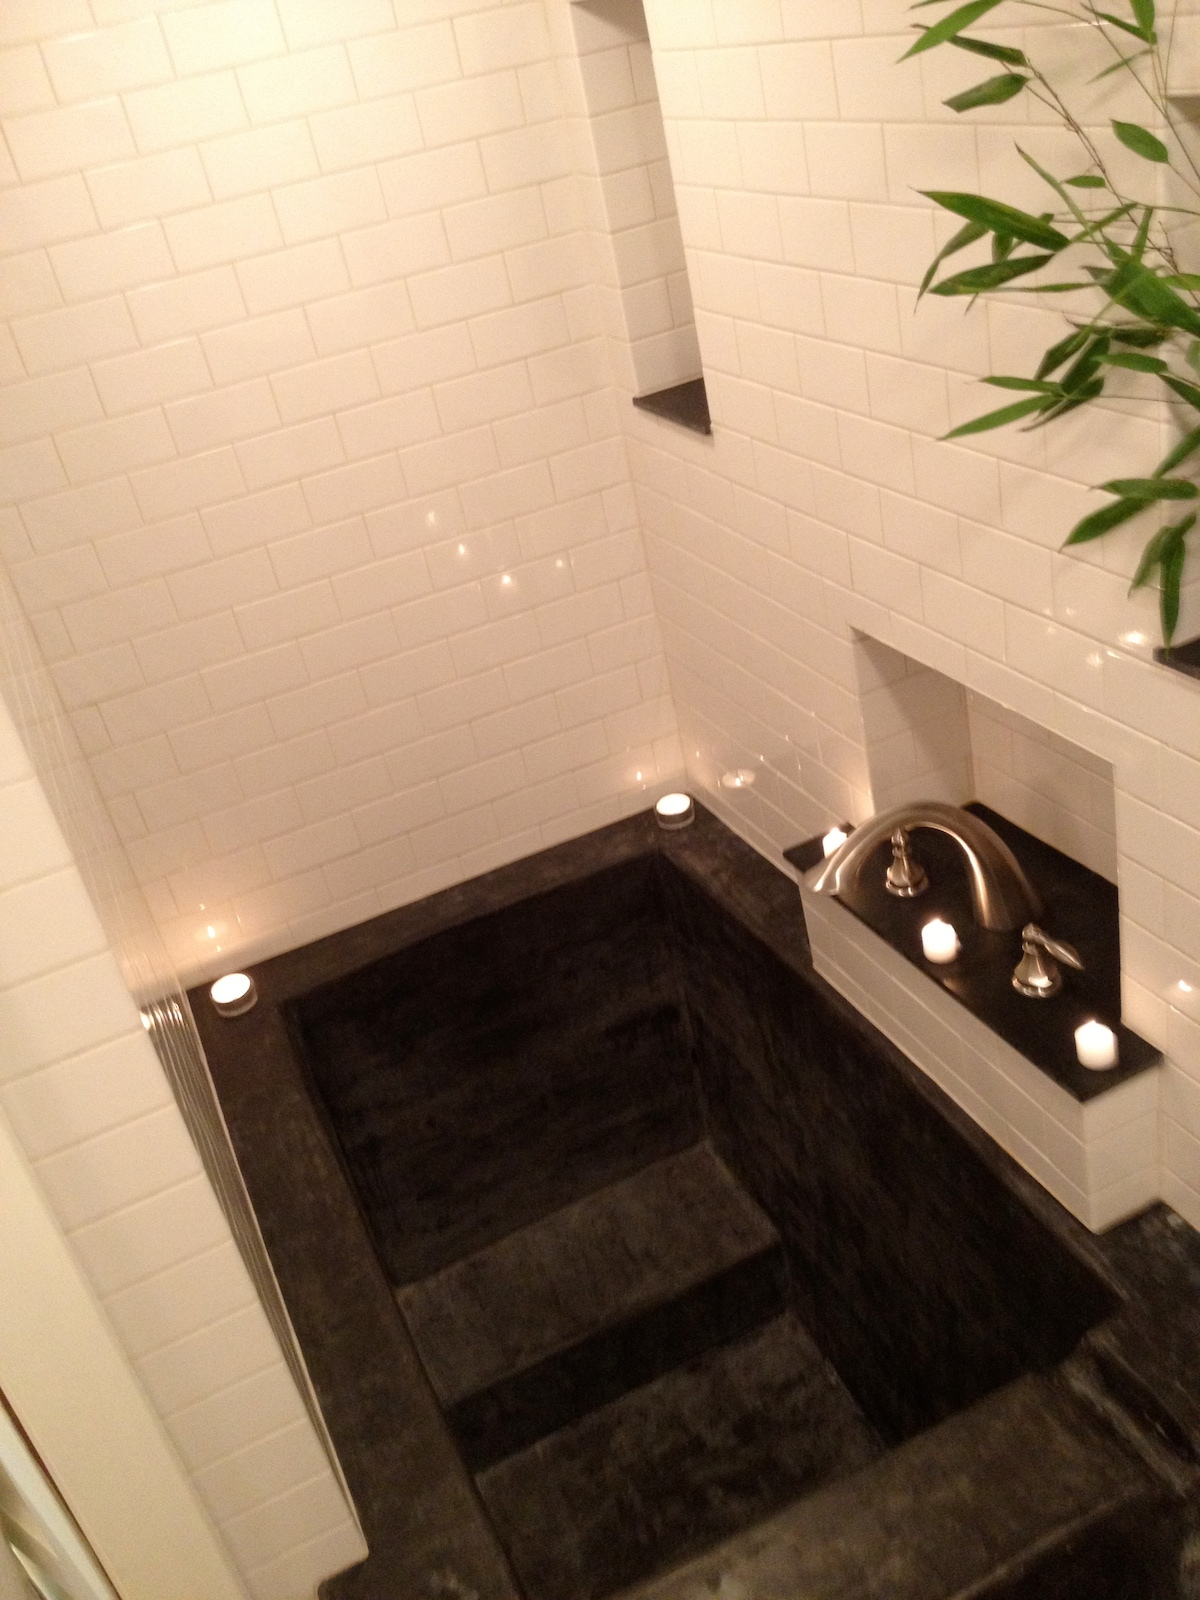 Soaking tub - overhead view - 4' deep and enough room for two!